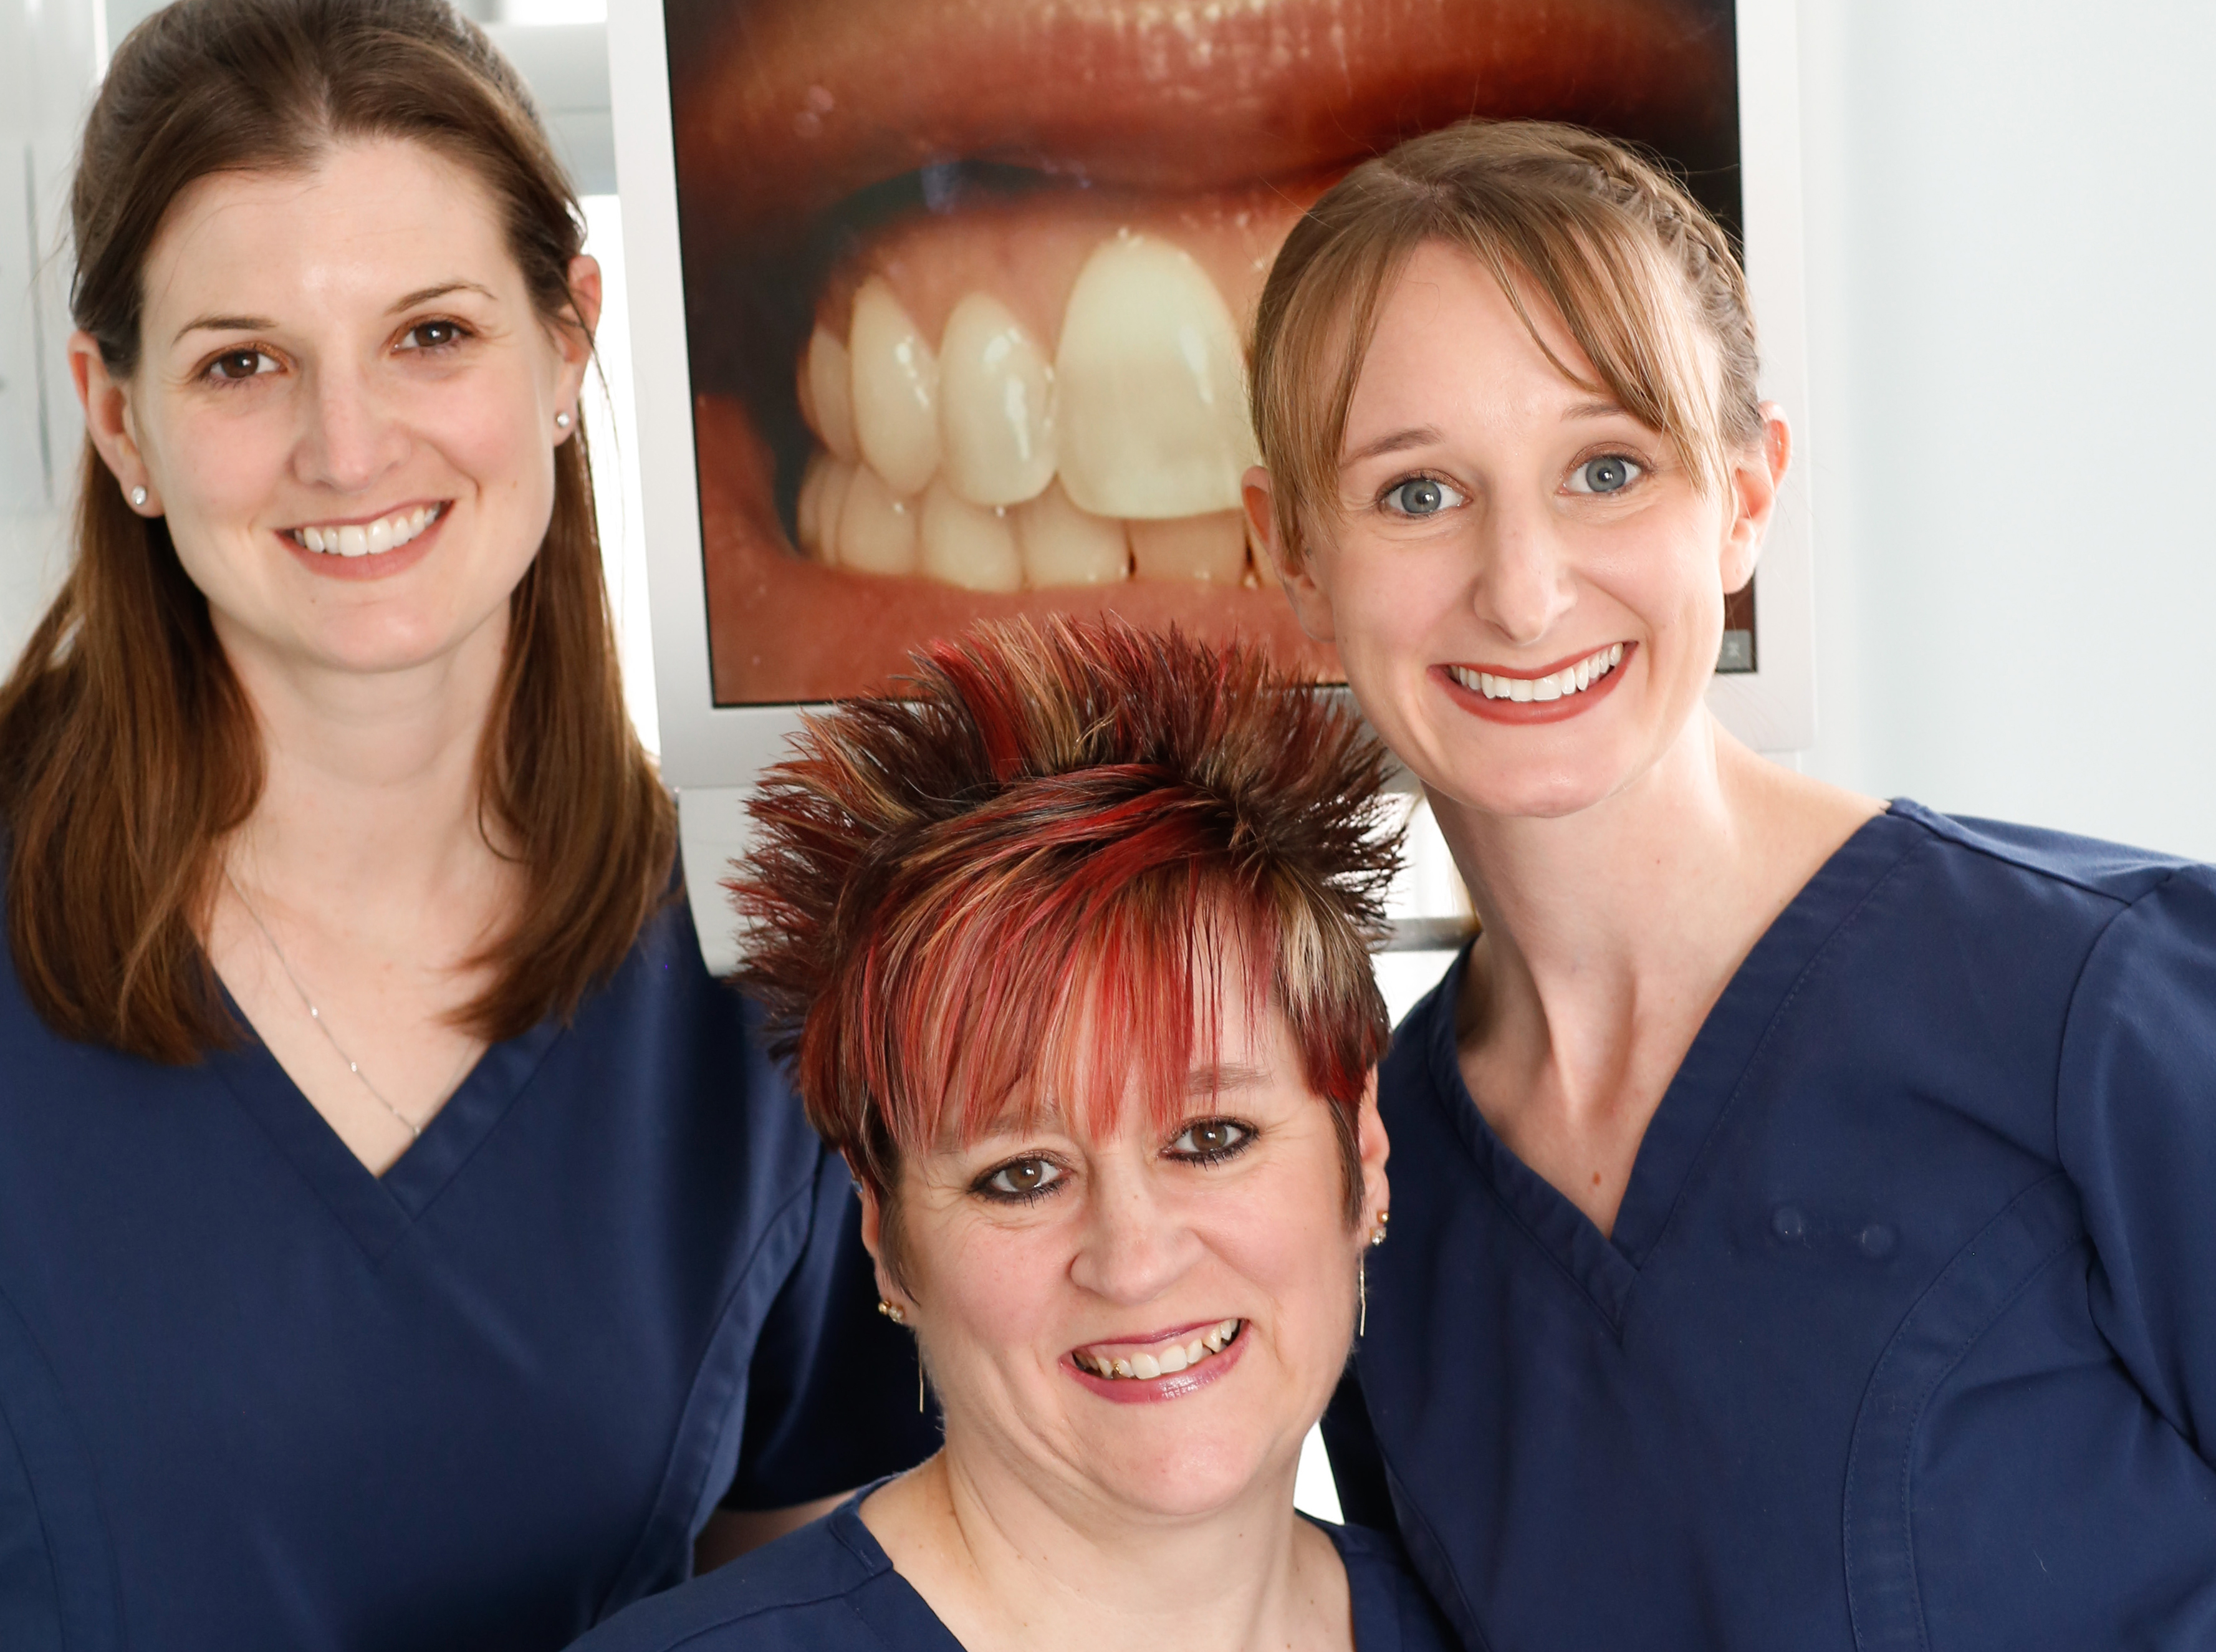 Qualified and Professional Romsey Dental Hygiene Team